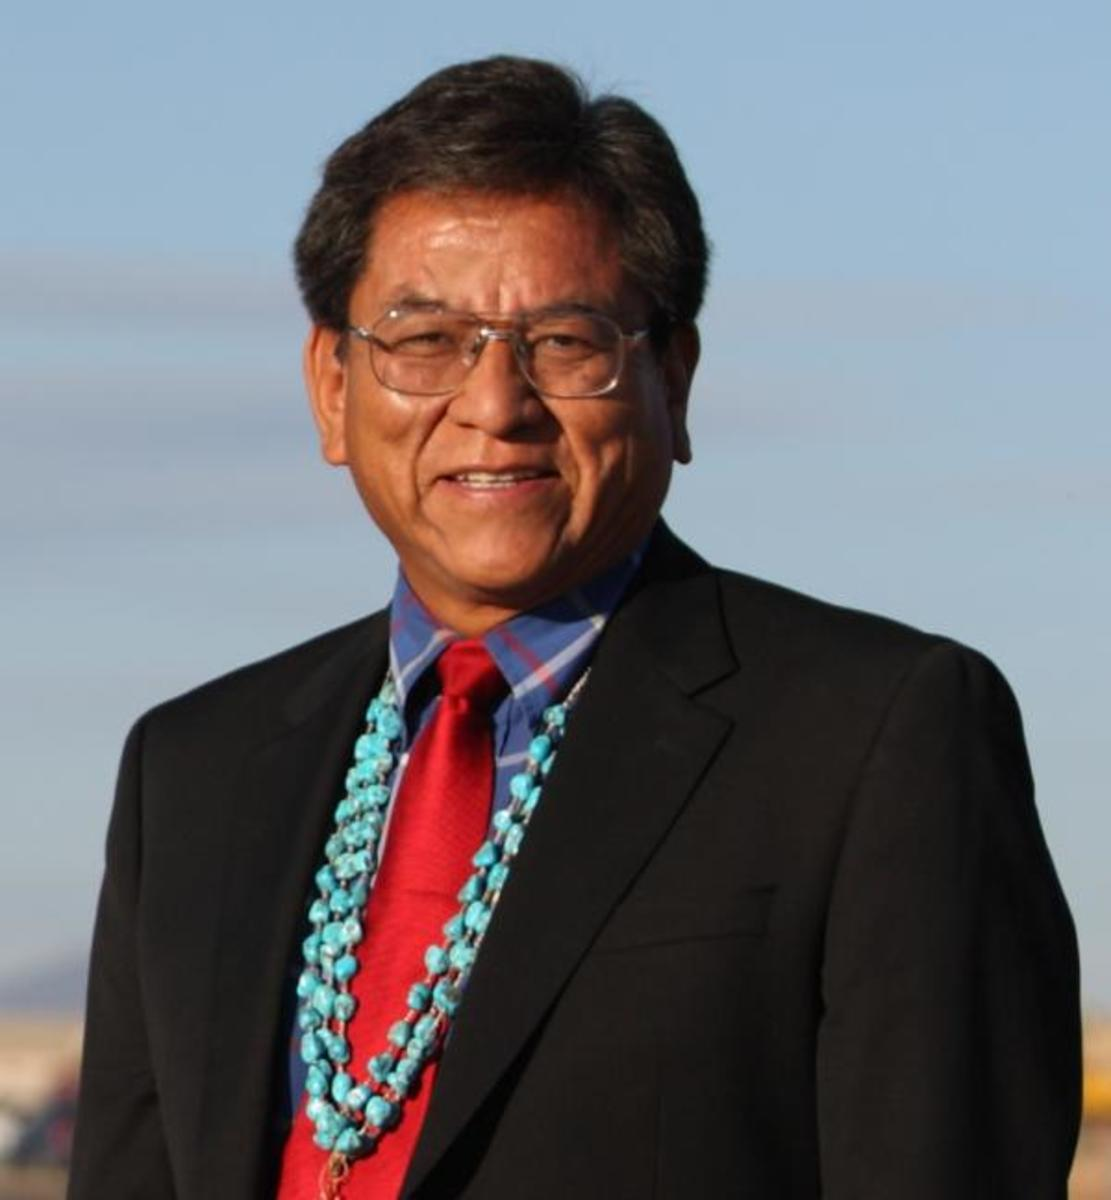 """Newly elected Navajo Nation President Russell Begaye: """"We need to unite, work together hard and move forward."""""""